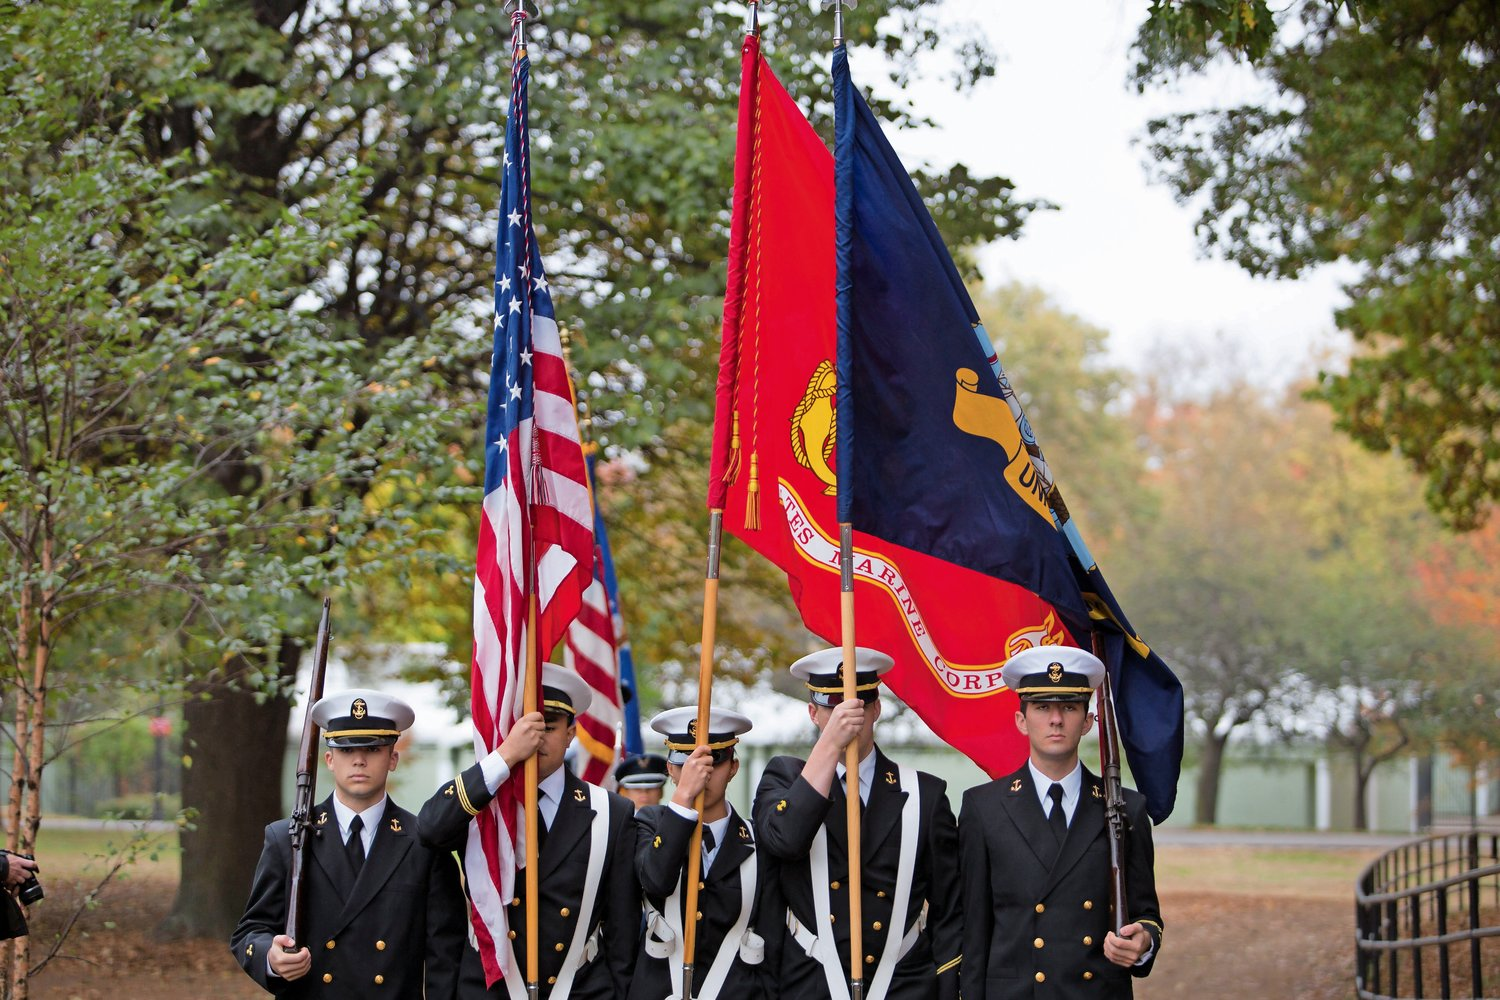 SUNY Maritime Navy ROTC members present the colors at the opening of a Veterans Day ceremony at Memorial Grove last year. Local veteran Herb Barrett first organized the ceremony in 2007 when he sought to restore the Van Cortlandt Park location with his friend and fellow veteran, the late Donald Tannen.